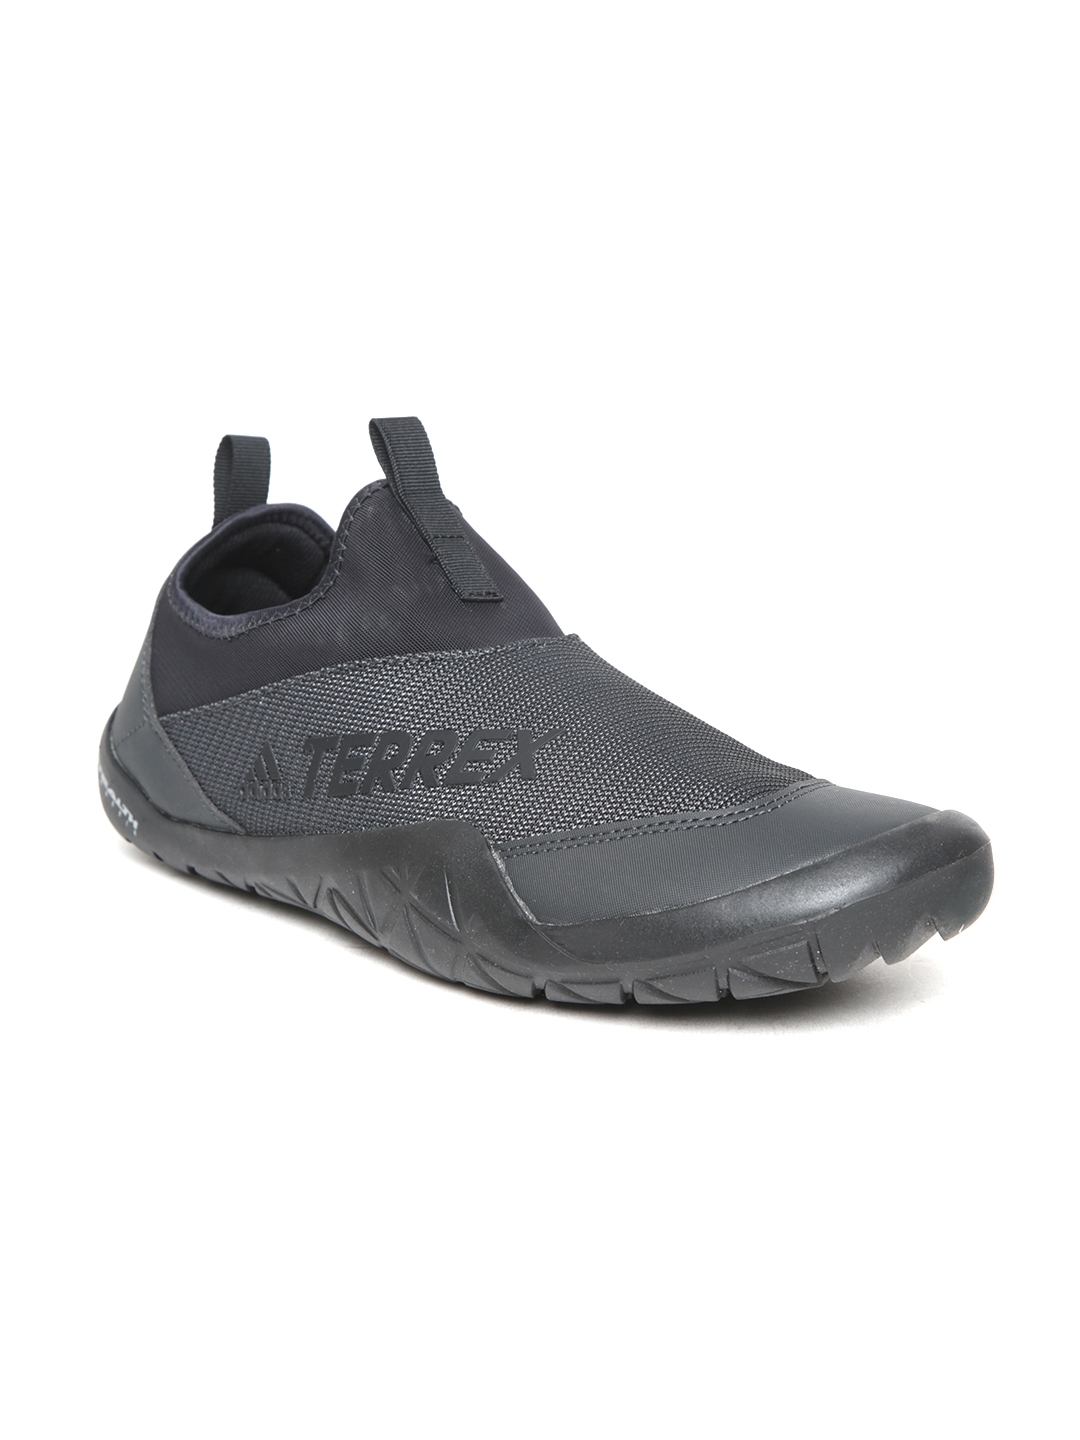 85cf7b818615 Buy Adidas Unisex Black Terrex CC Jawpaw II Outdoor Shoes - Sports ...